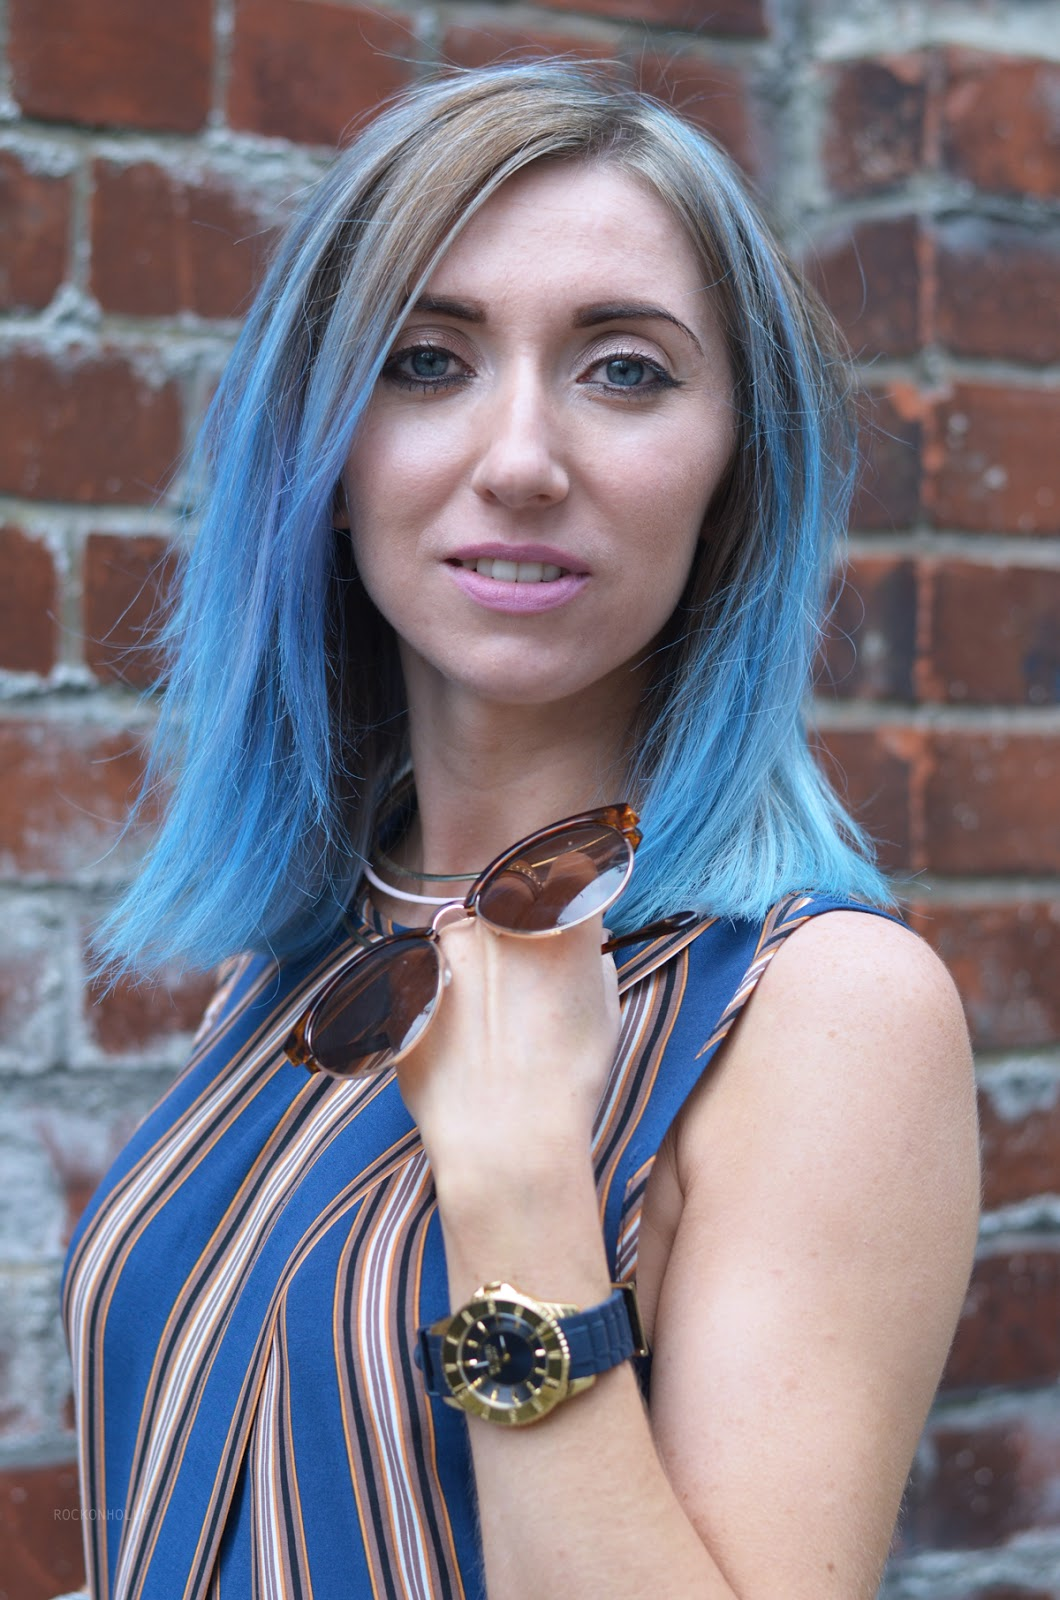 ASOS stripes and blue hair